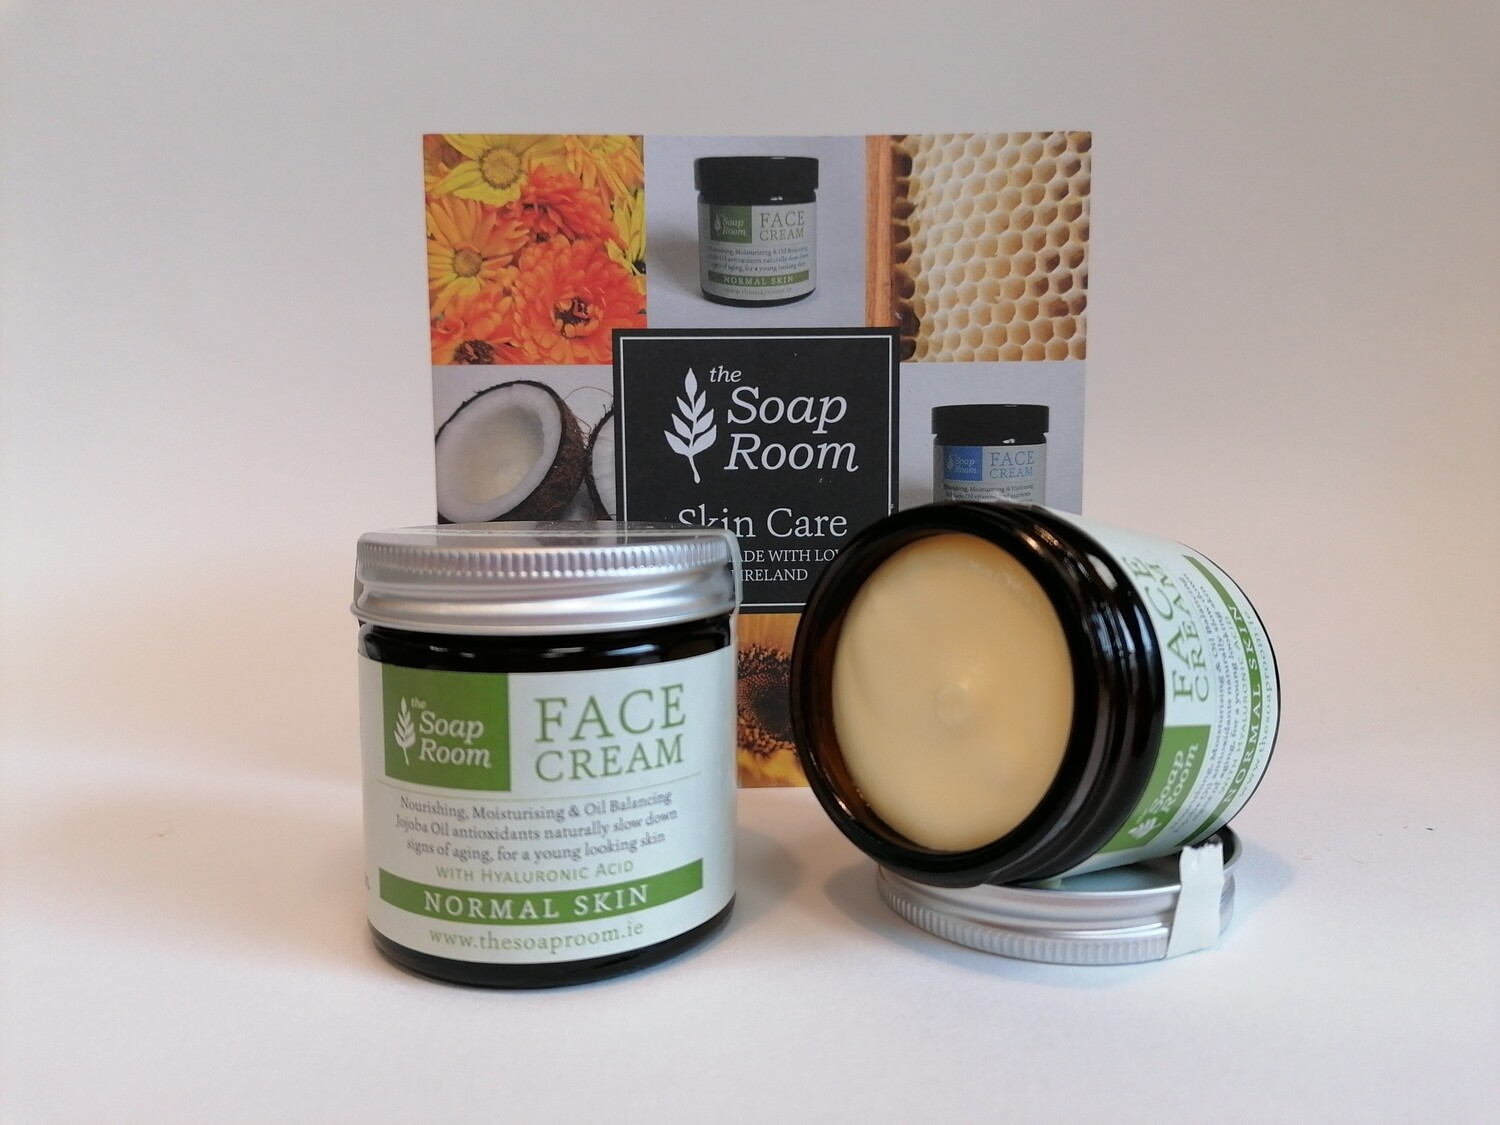 The Soap Room Normal Skin Face Cream